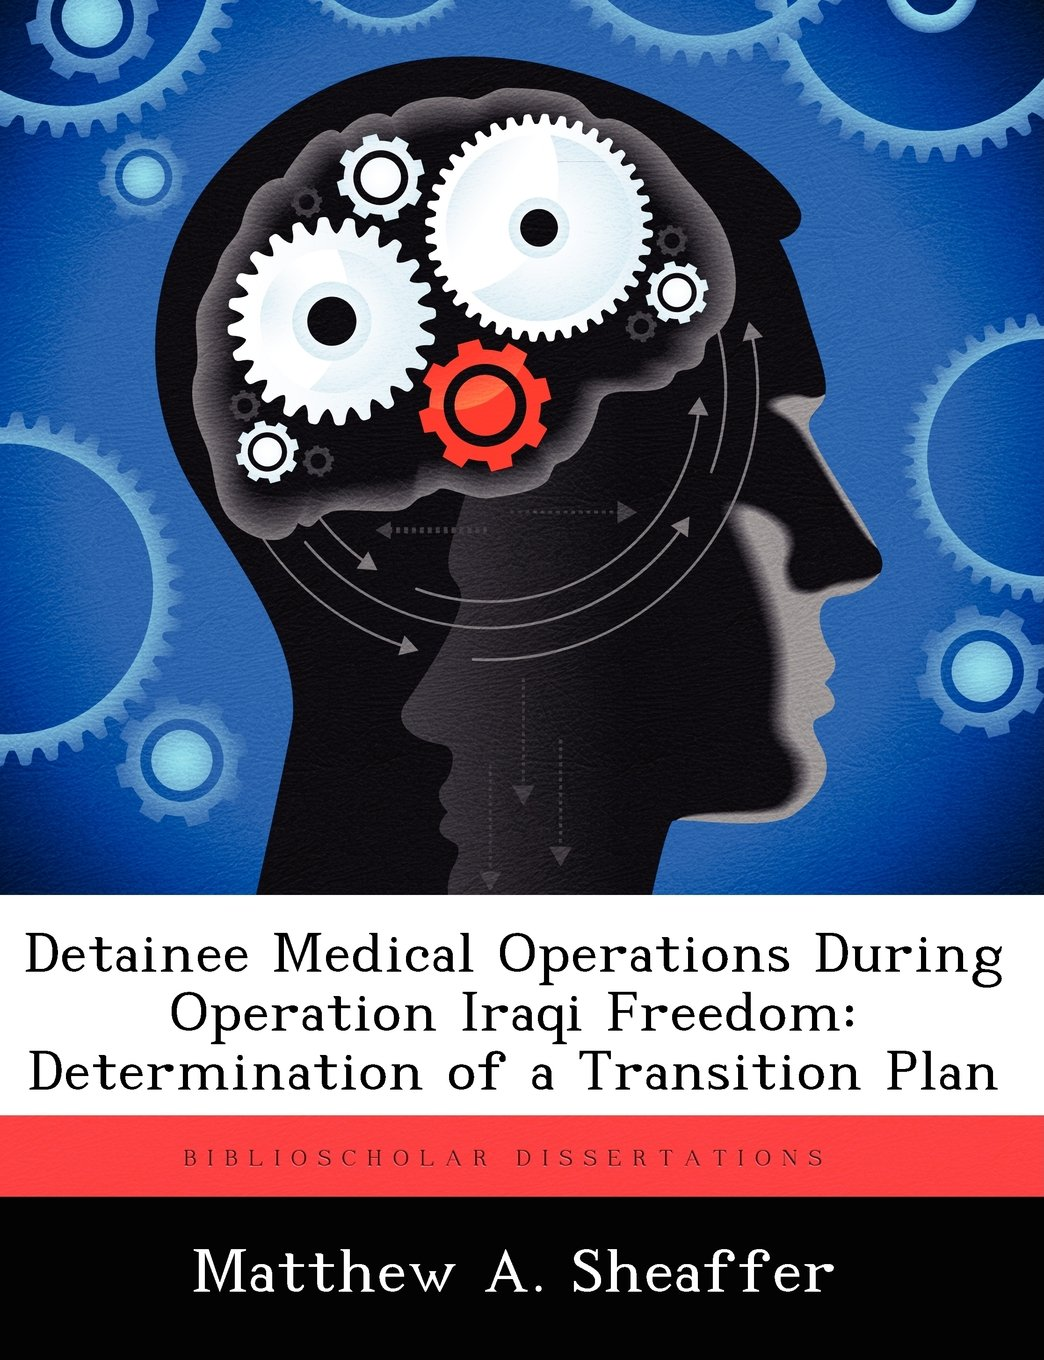 Detainee Medical Operations During Operation Iraqi Freedom: Determination of a Transition Plan PDF